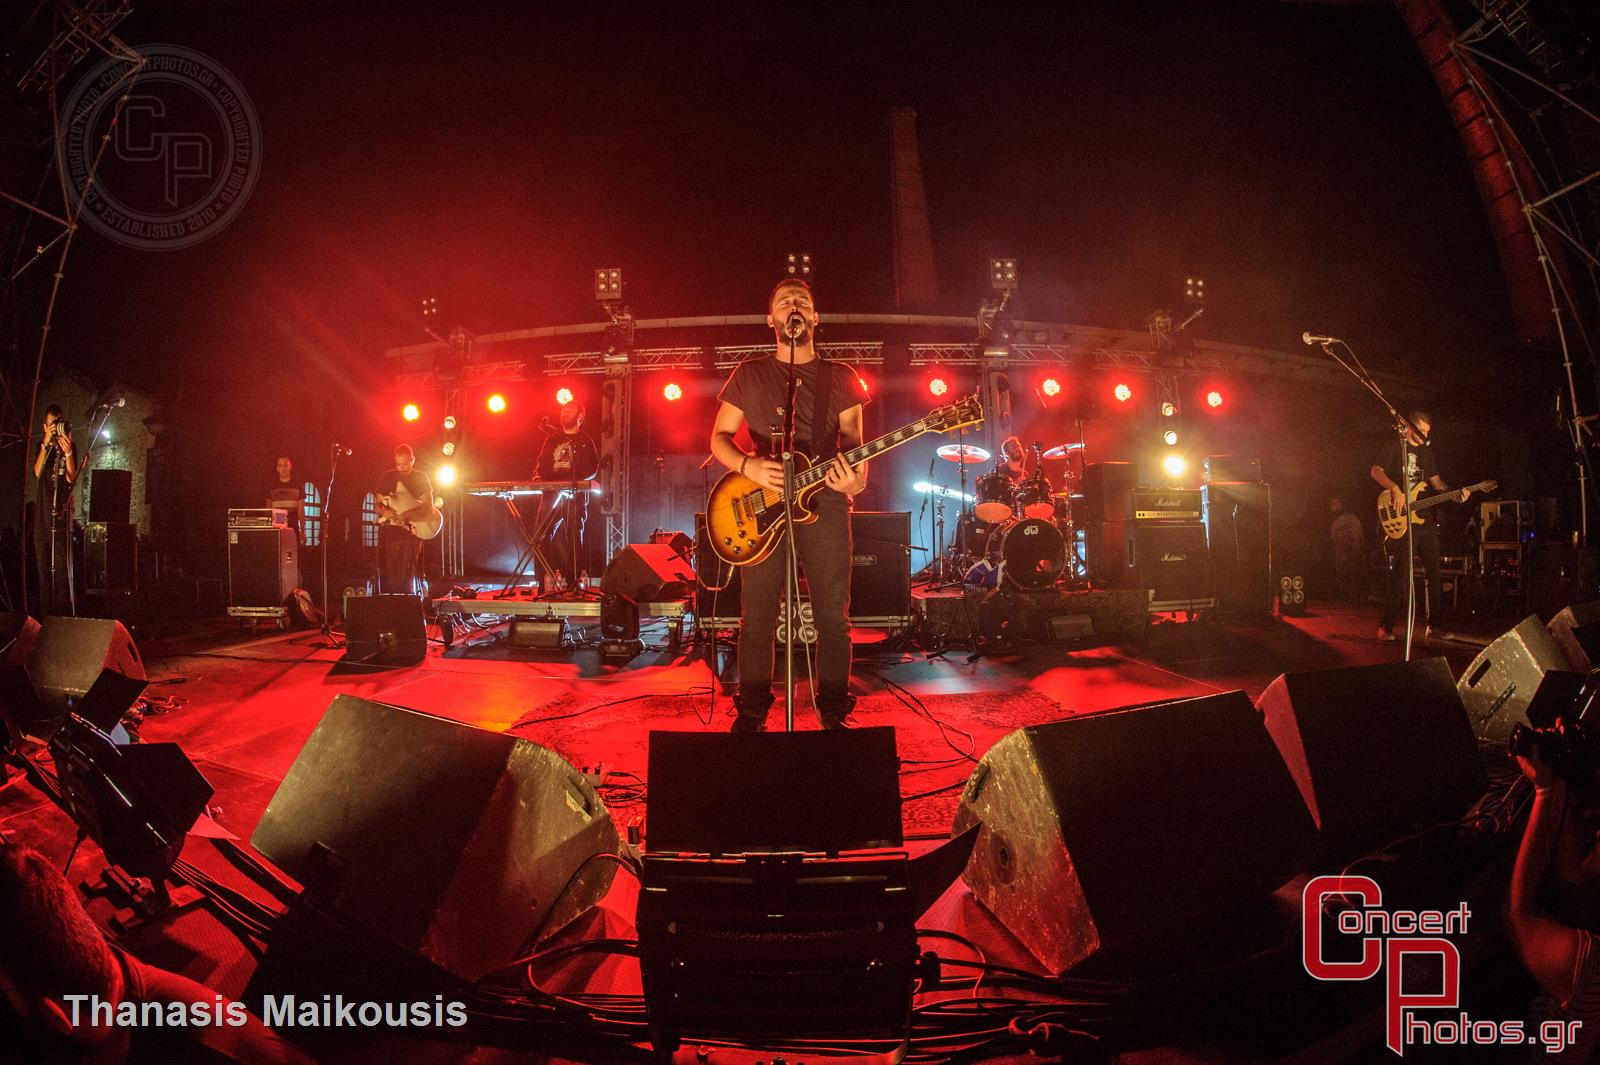 VIC-VIC-Technopolis photographer: Thanasis Maikousis - concertphotos_20150925_20_52_36